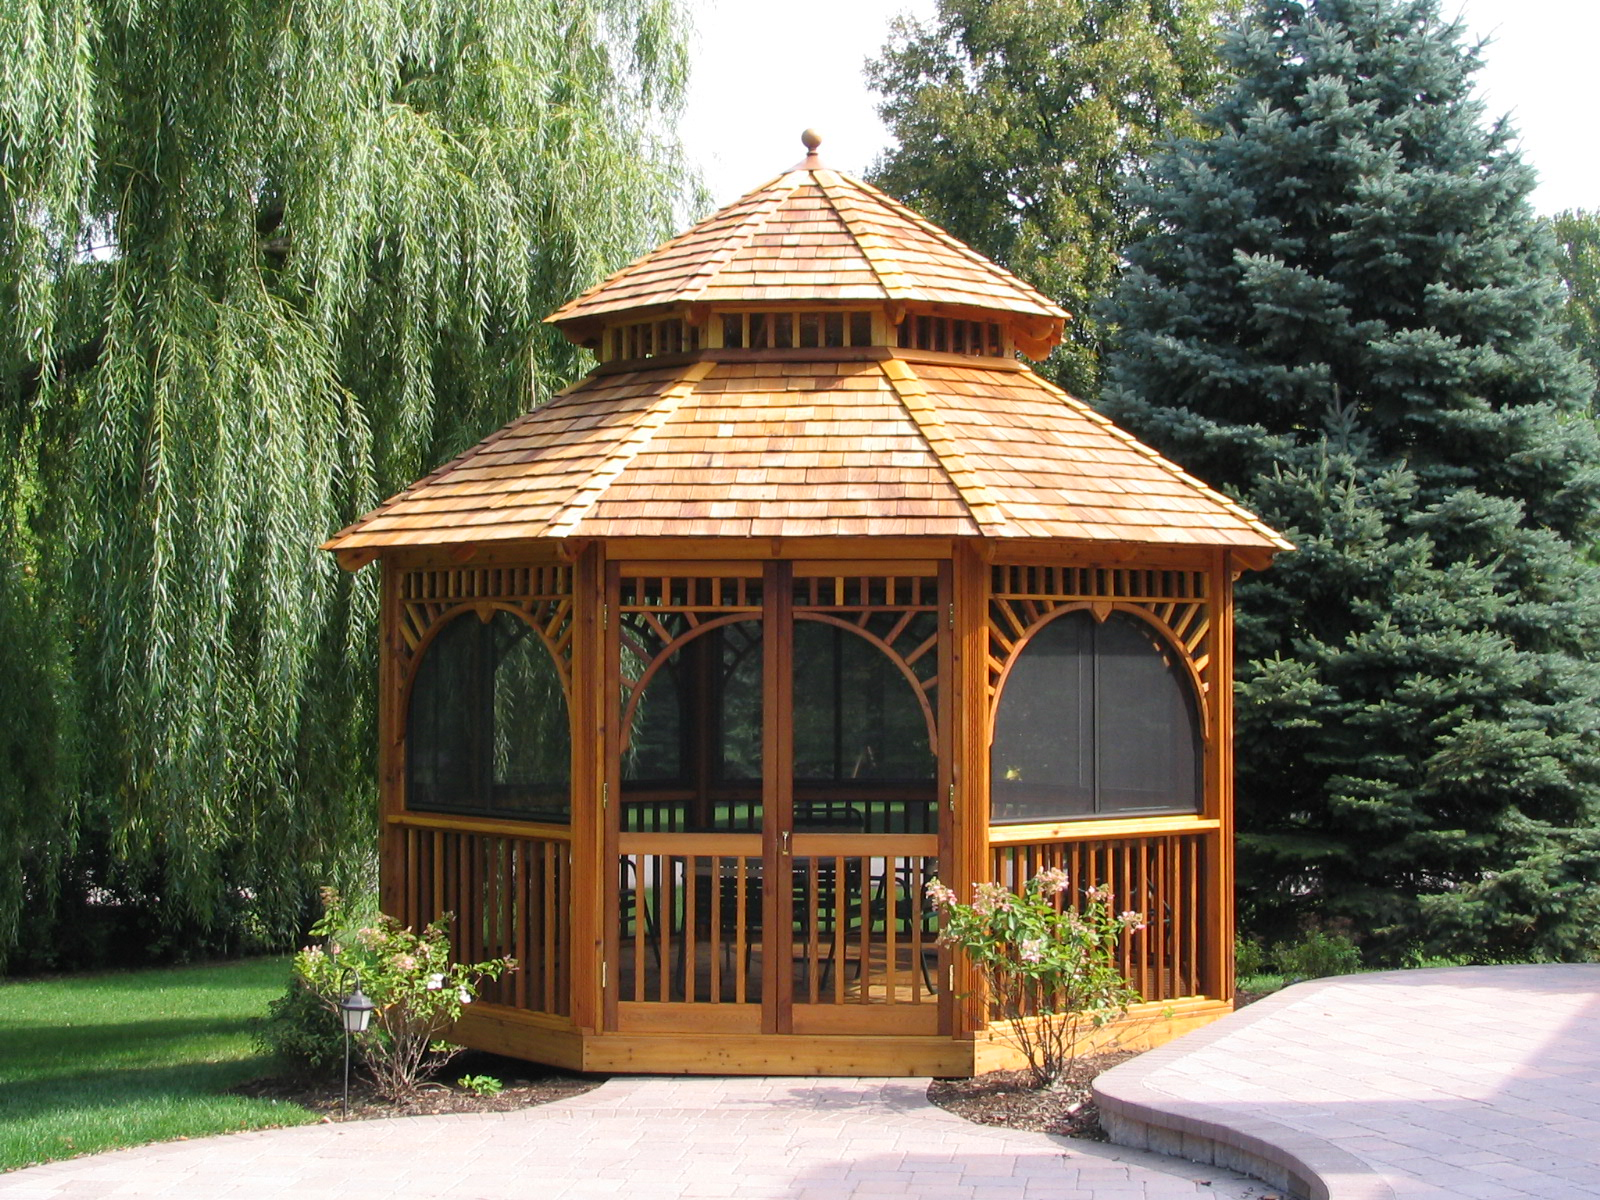 Gazebo garden shed plans building wood sheds for Outdoor plans and designs